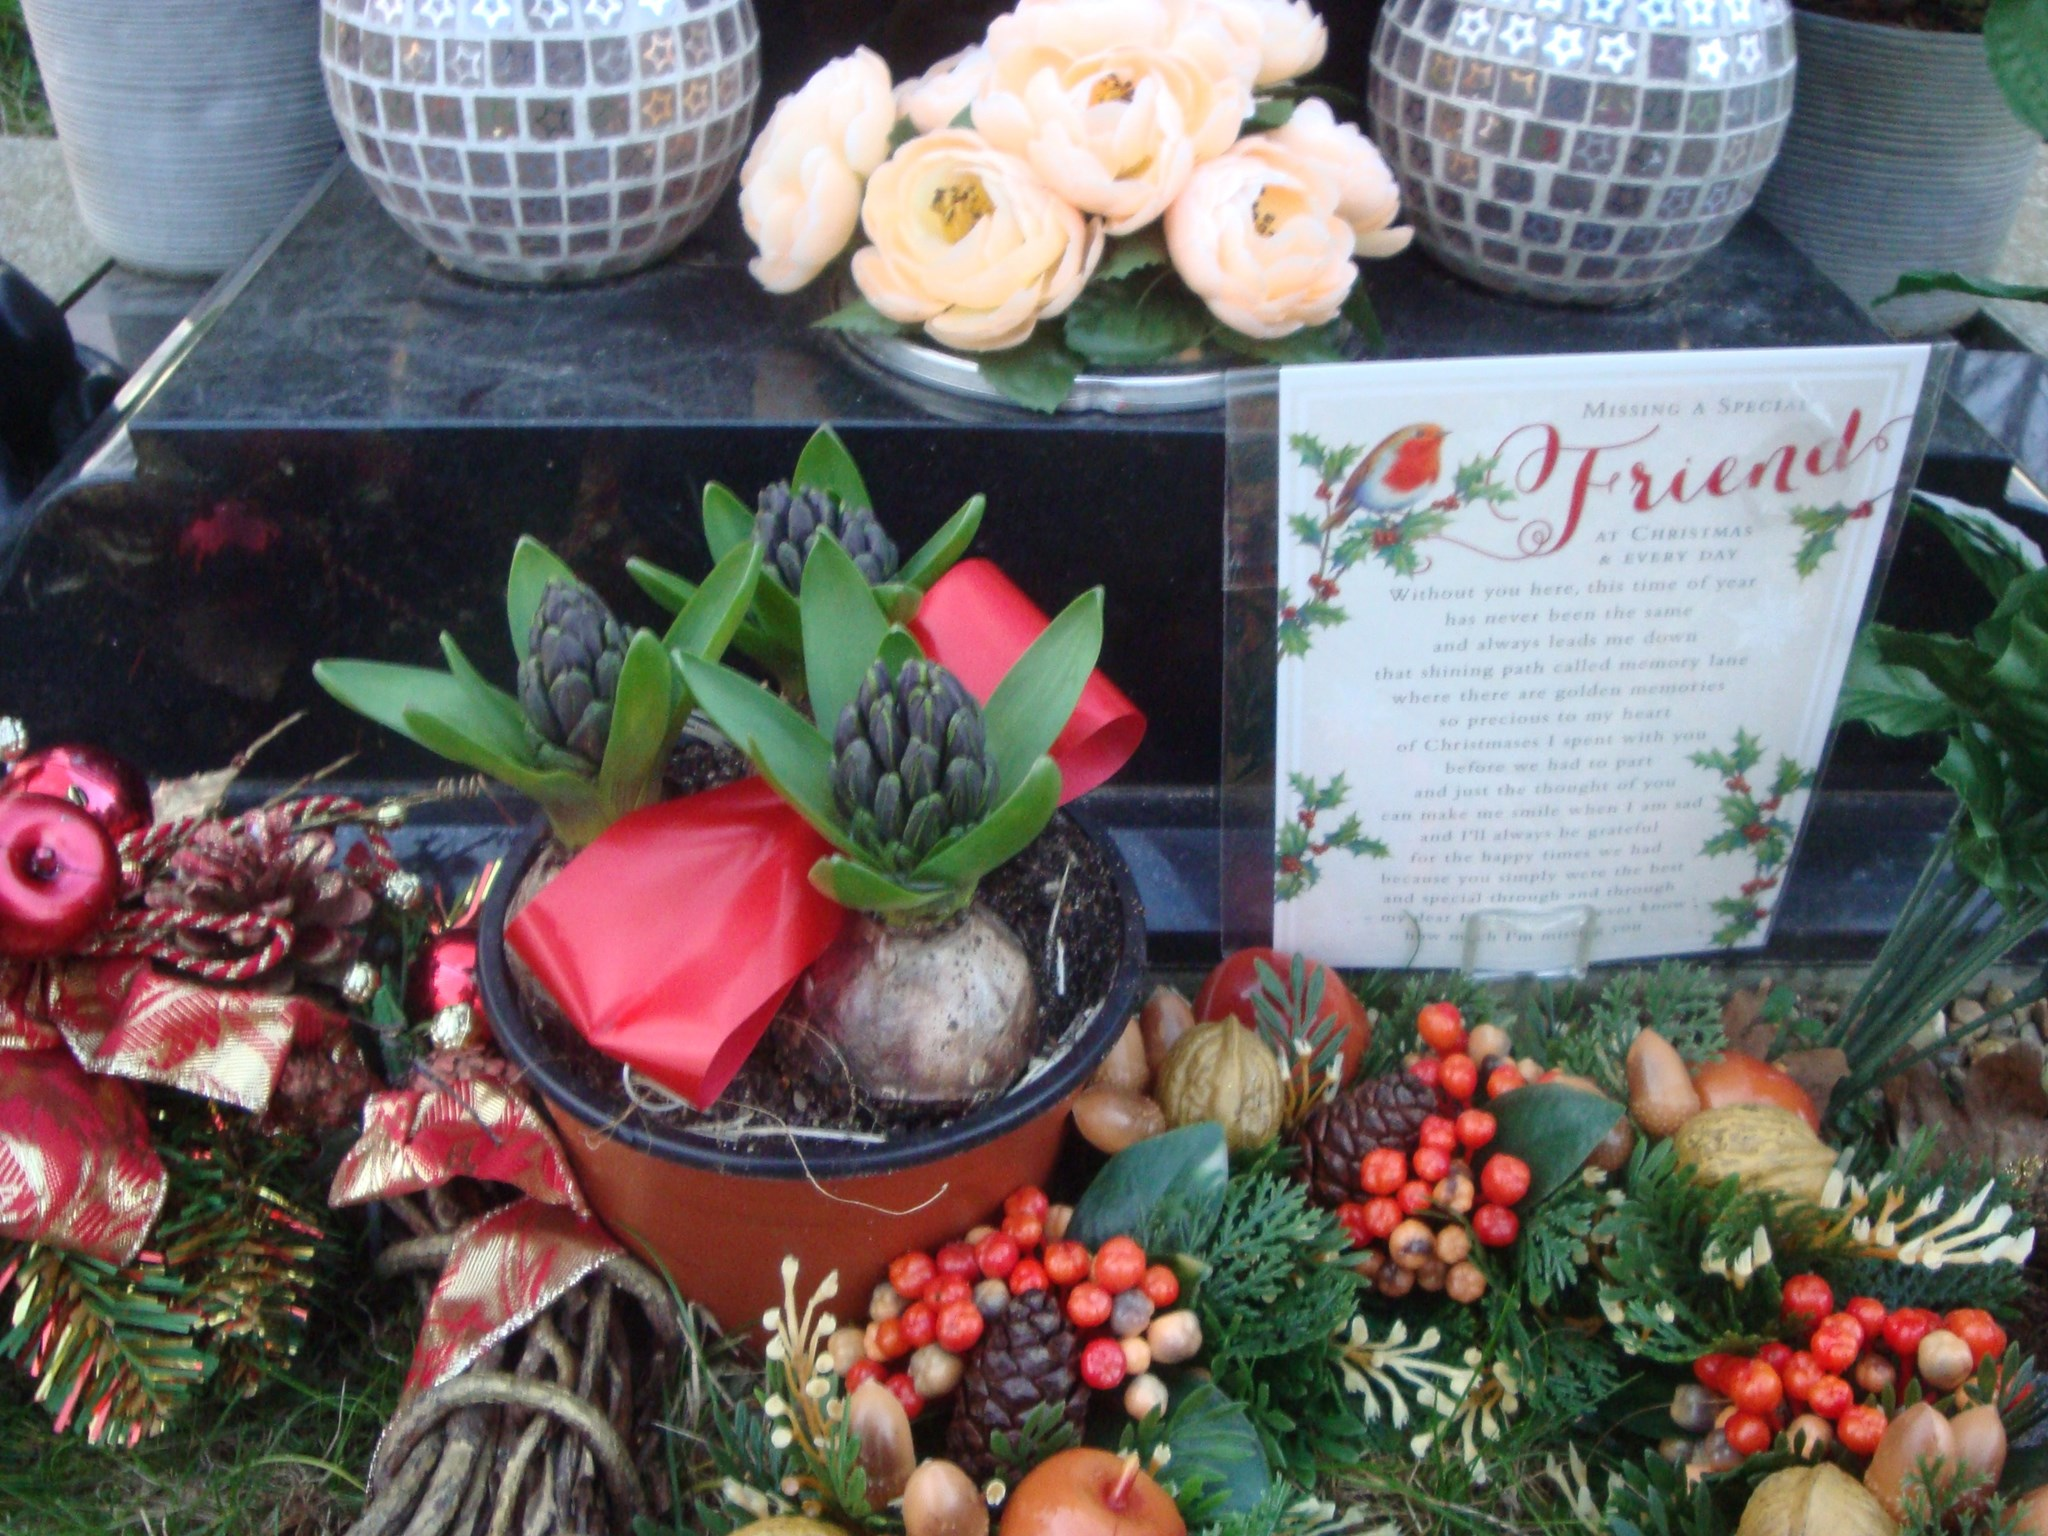 Hyacinths from Jean Dale & Christmas card from Clair, Tshequa, Matt & Nicky - 24th December 2014